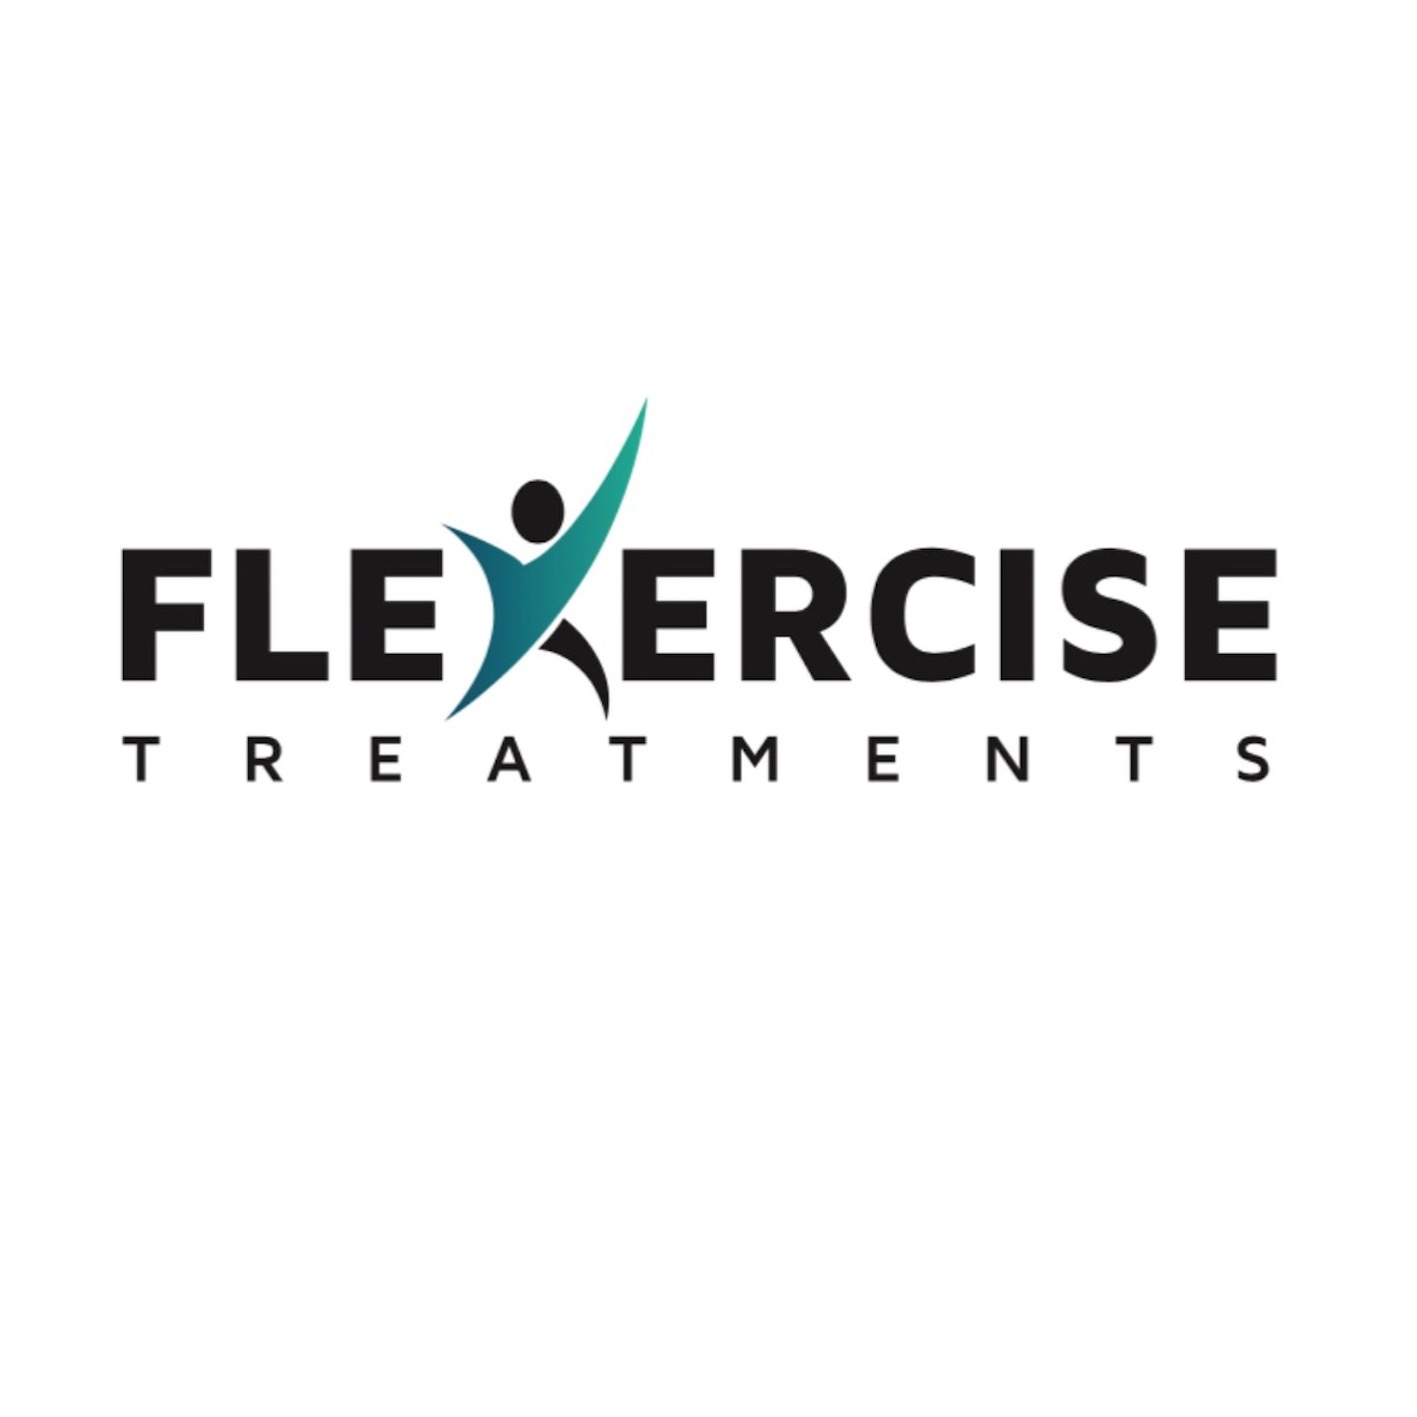 Flexercise Treatments